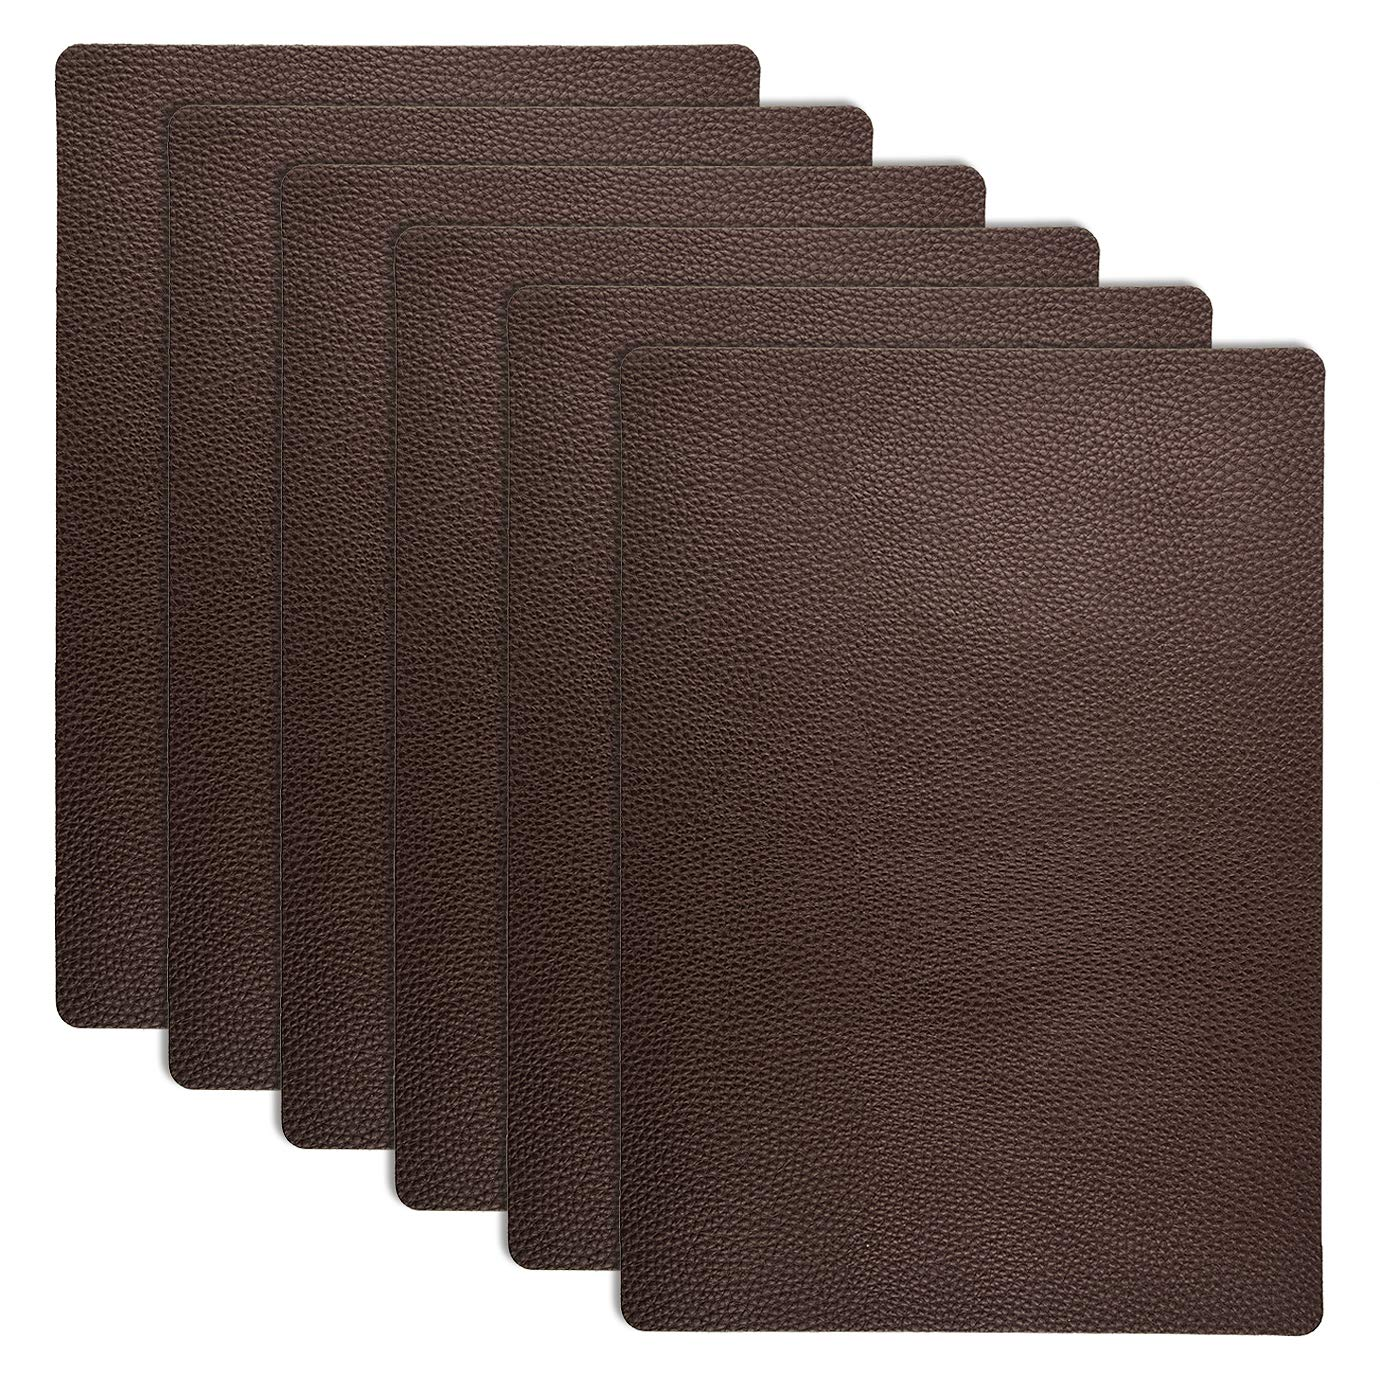 KONUNUS 6 Pieces 11 x 8 Inch PU Leather Repair Patch, Self-Adhesive Couch Patch Leather Repair Kit for Sofas, Furnitures, Car Seats, Couch, Hand Bags and Jackets, Brown